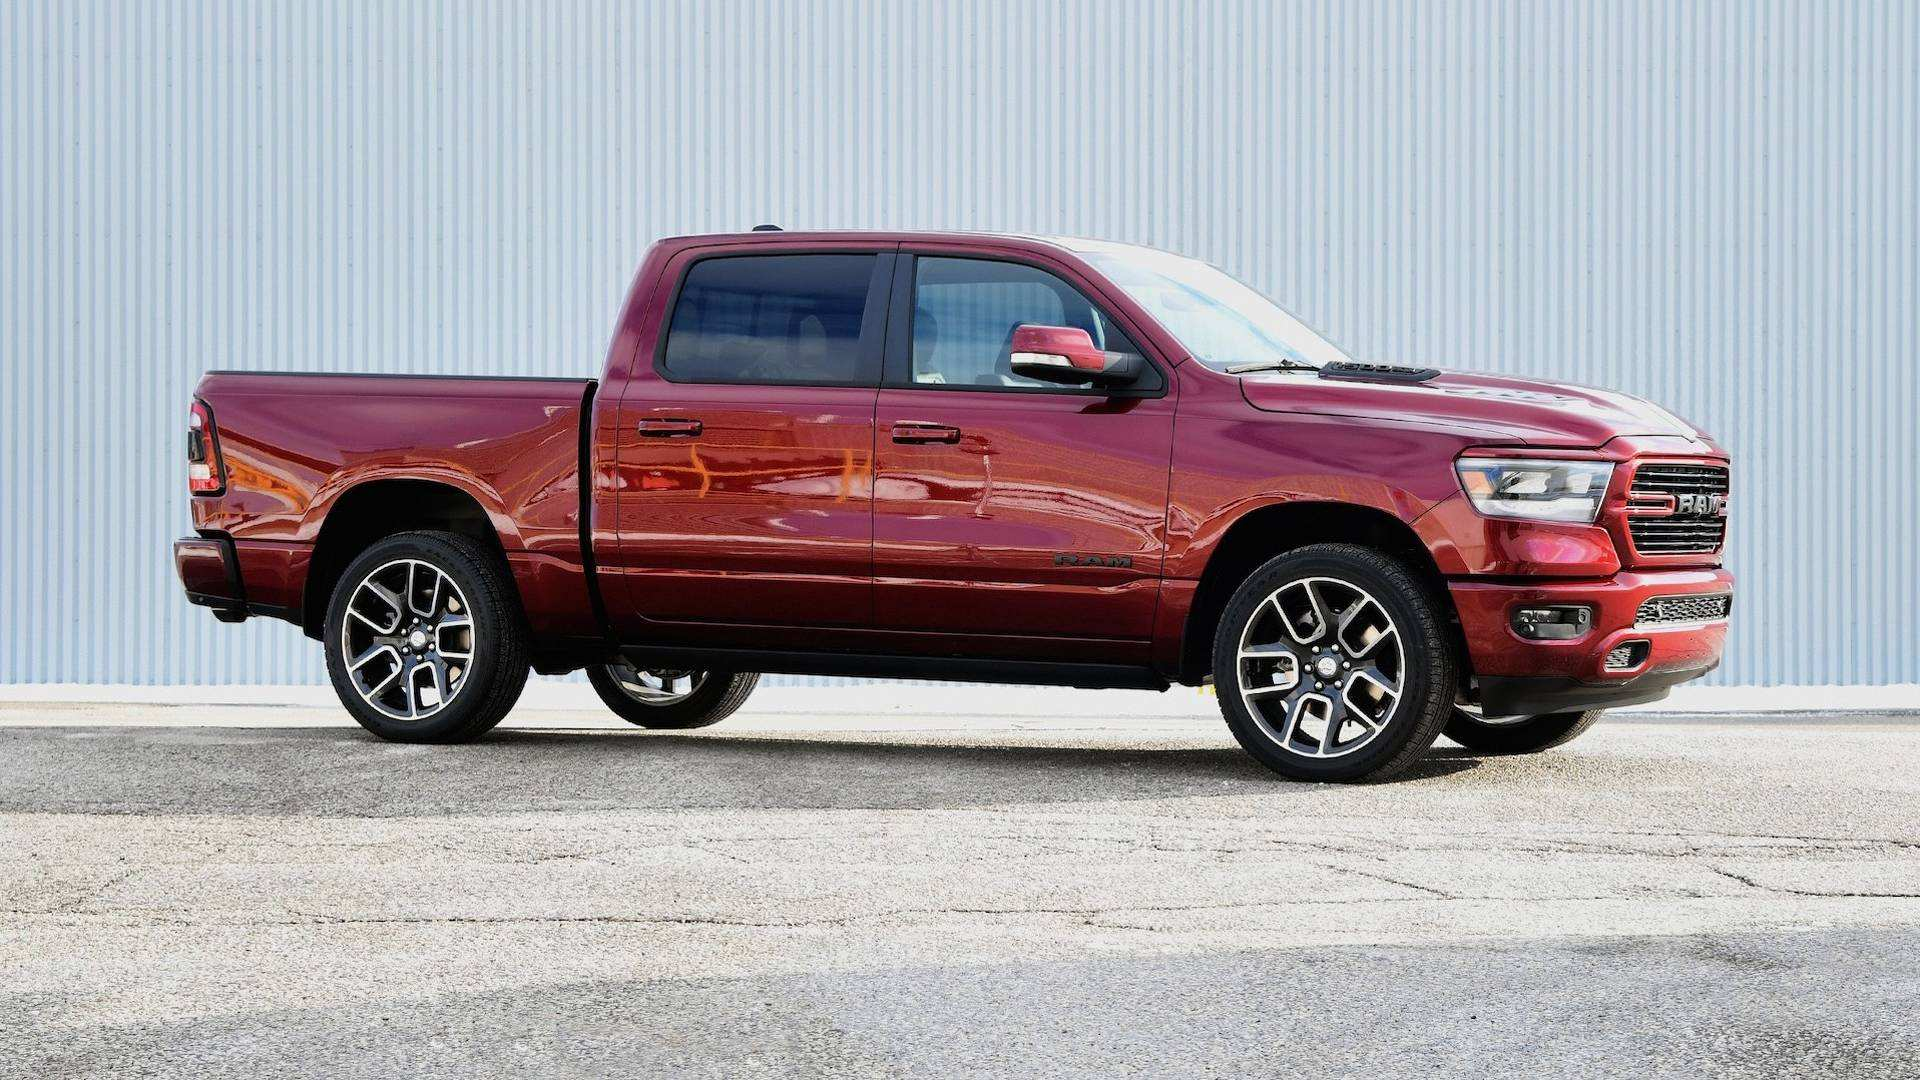 45 All New New Dodge Ram 2019 Quad Cab Redesign And Concept Ratings with New Dodge Ram 2019 Quad Cab Redesign And Concept